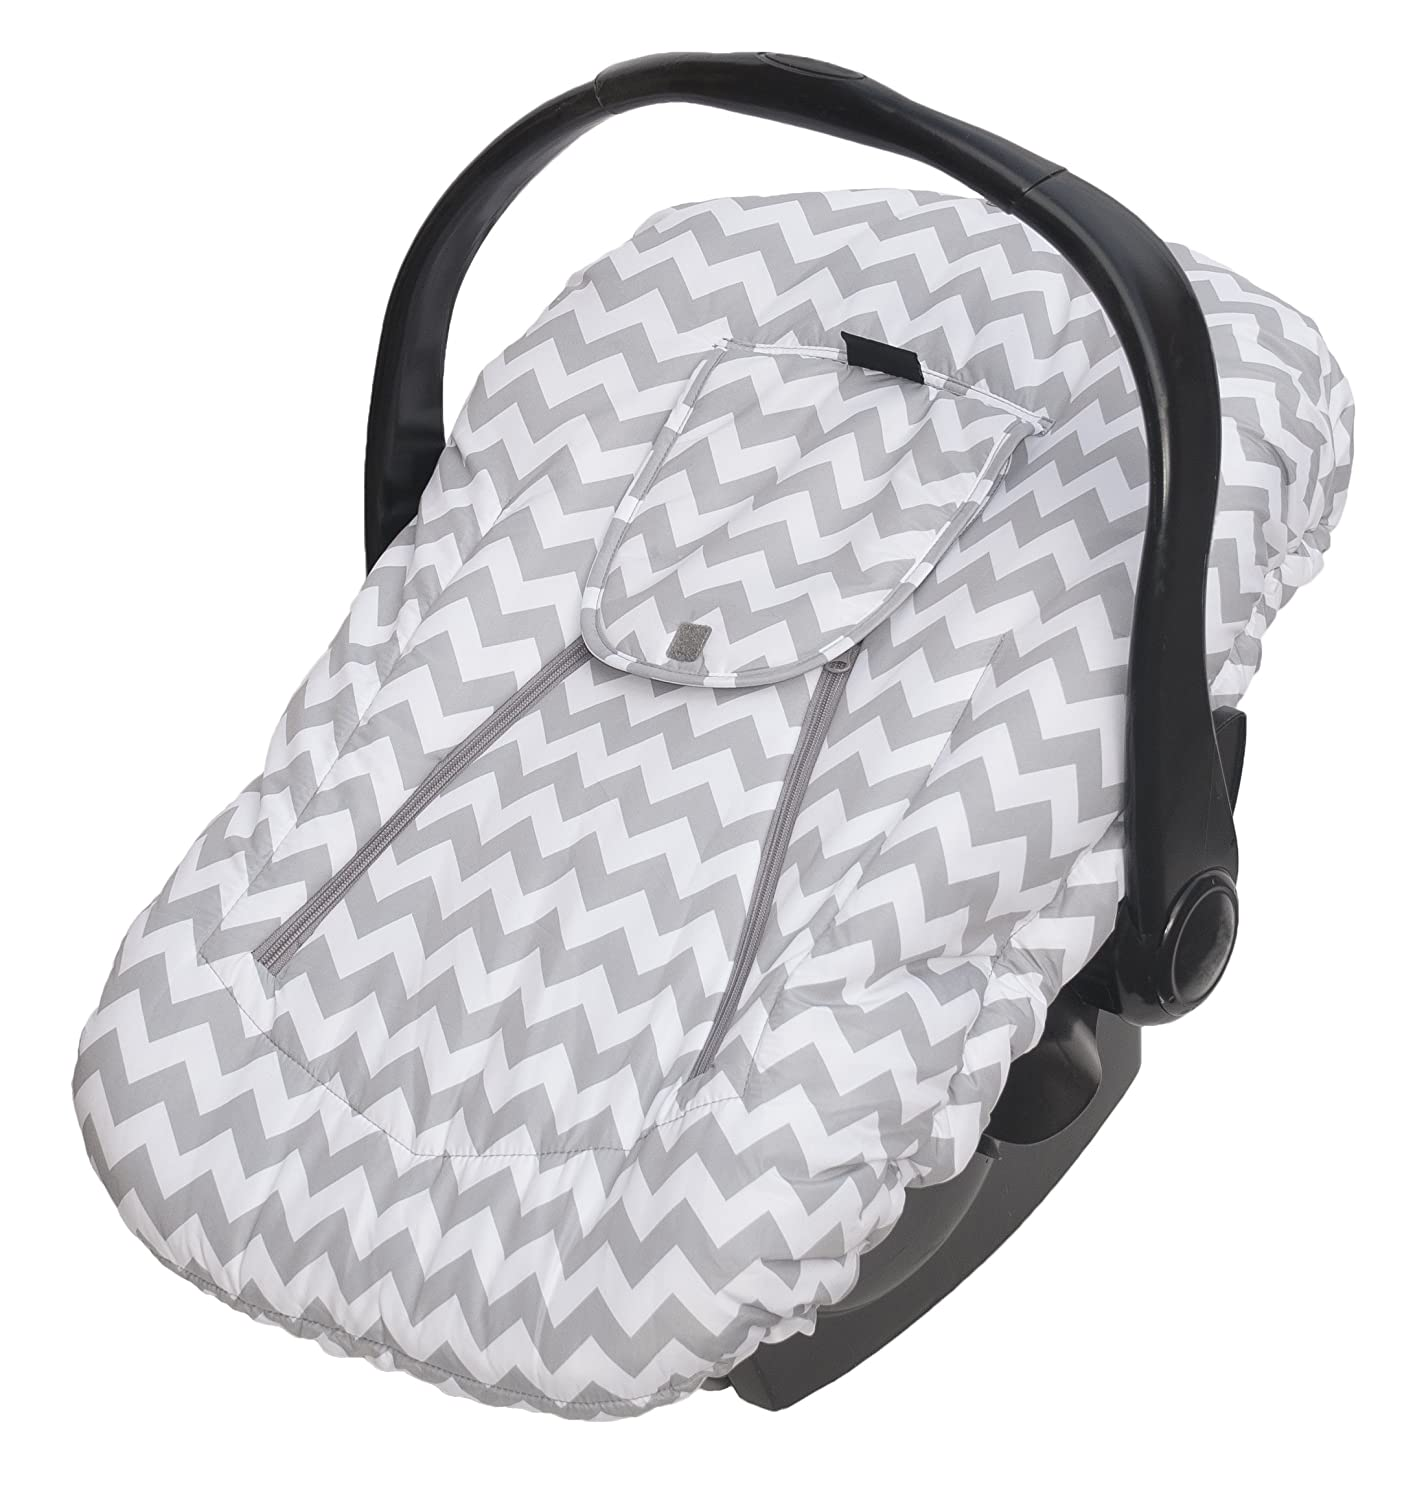 Jolly Jumper Sneak-A-Peek Deluxe , Grey and White Striped Car Seats 433-14